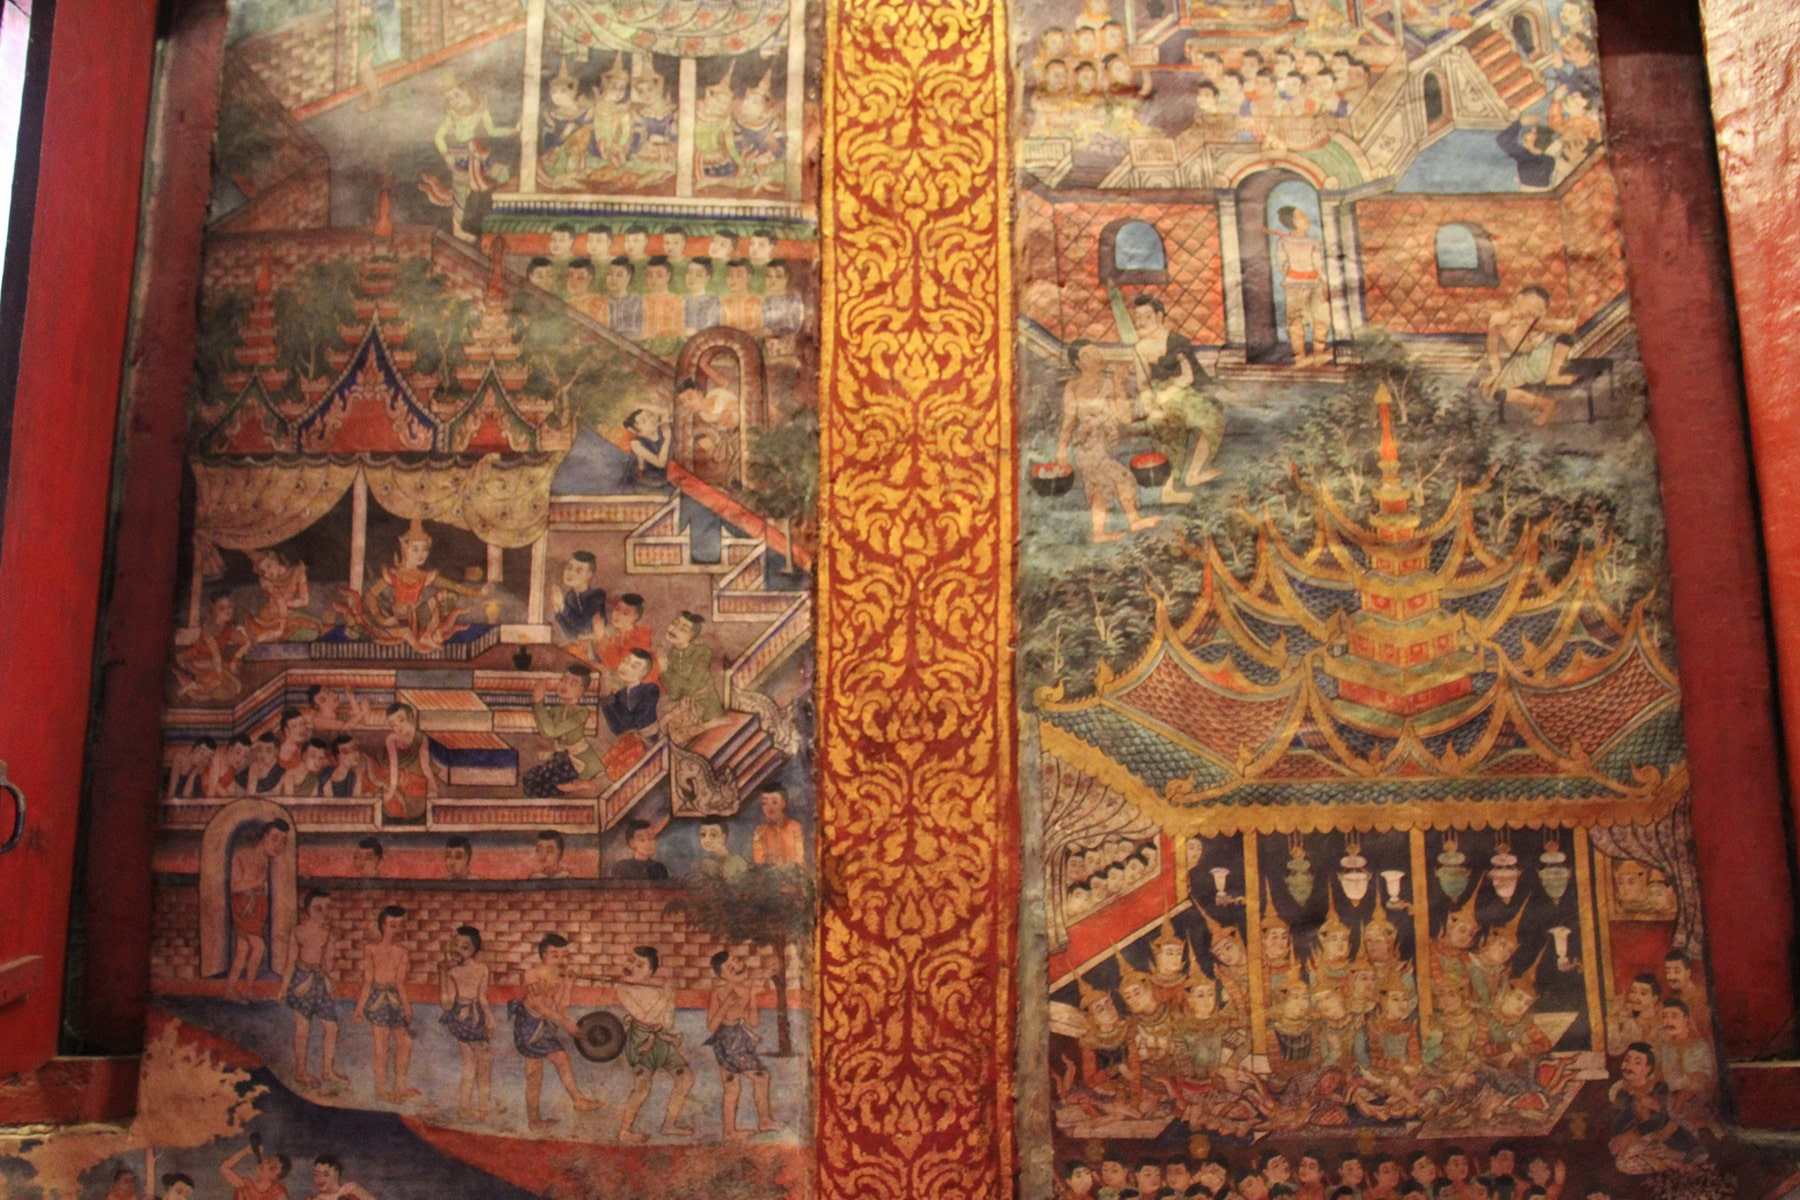 Frescoes of Chiang Mai Wat Phra Singh temple